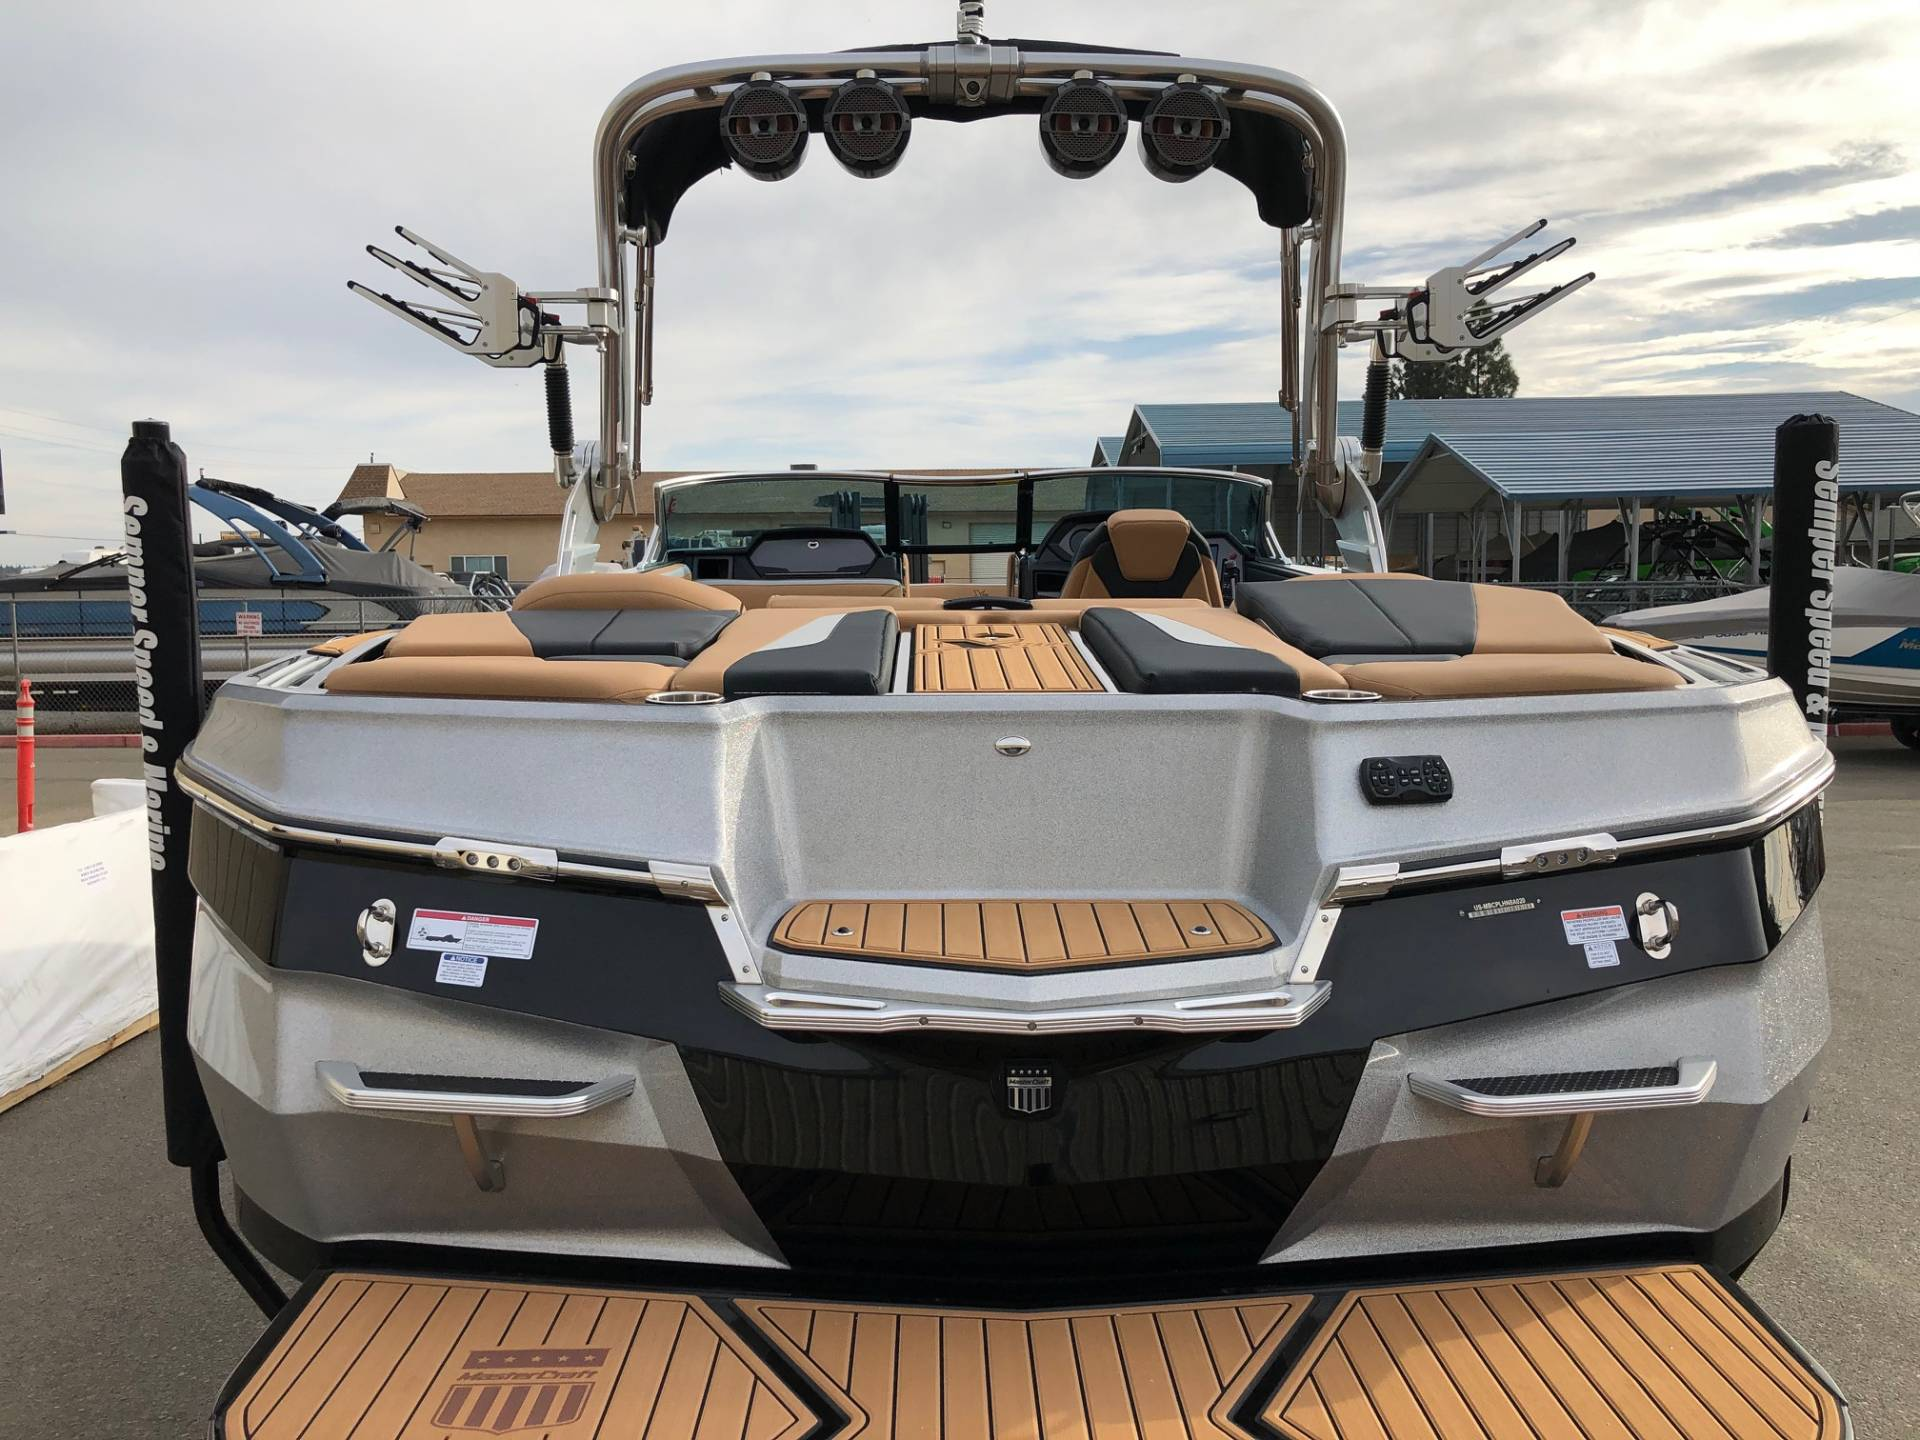 2020 Mastercraft XStar in Madera, California - Photo 8